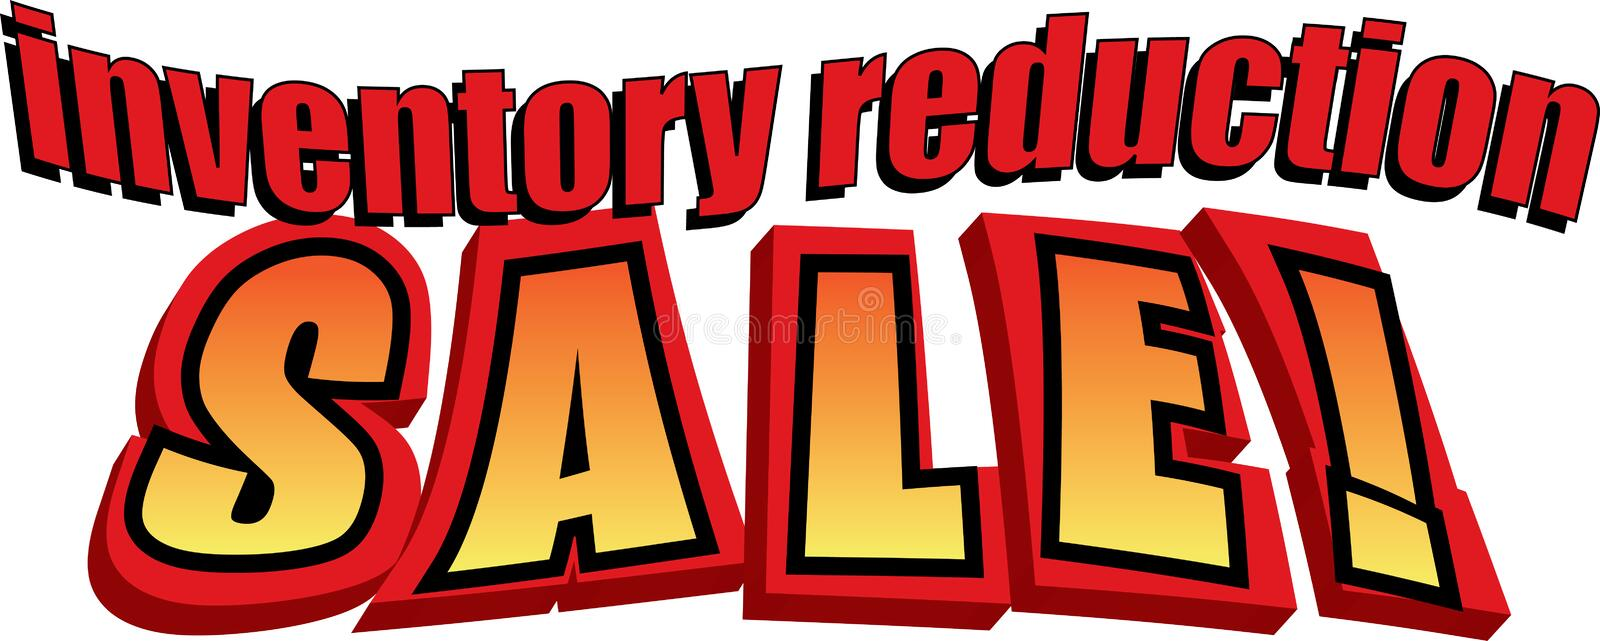 Image result for inventory reduction sale